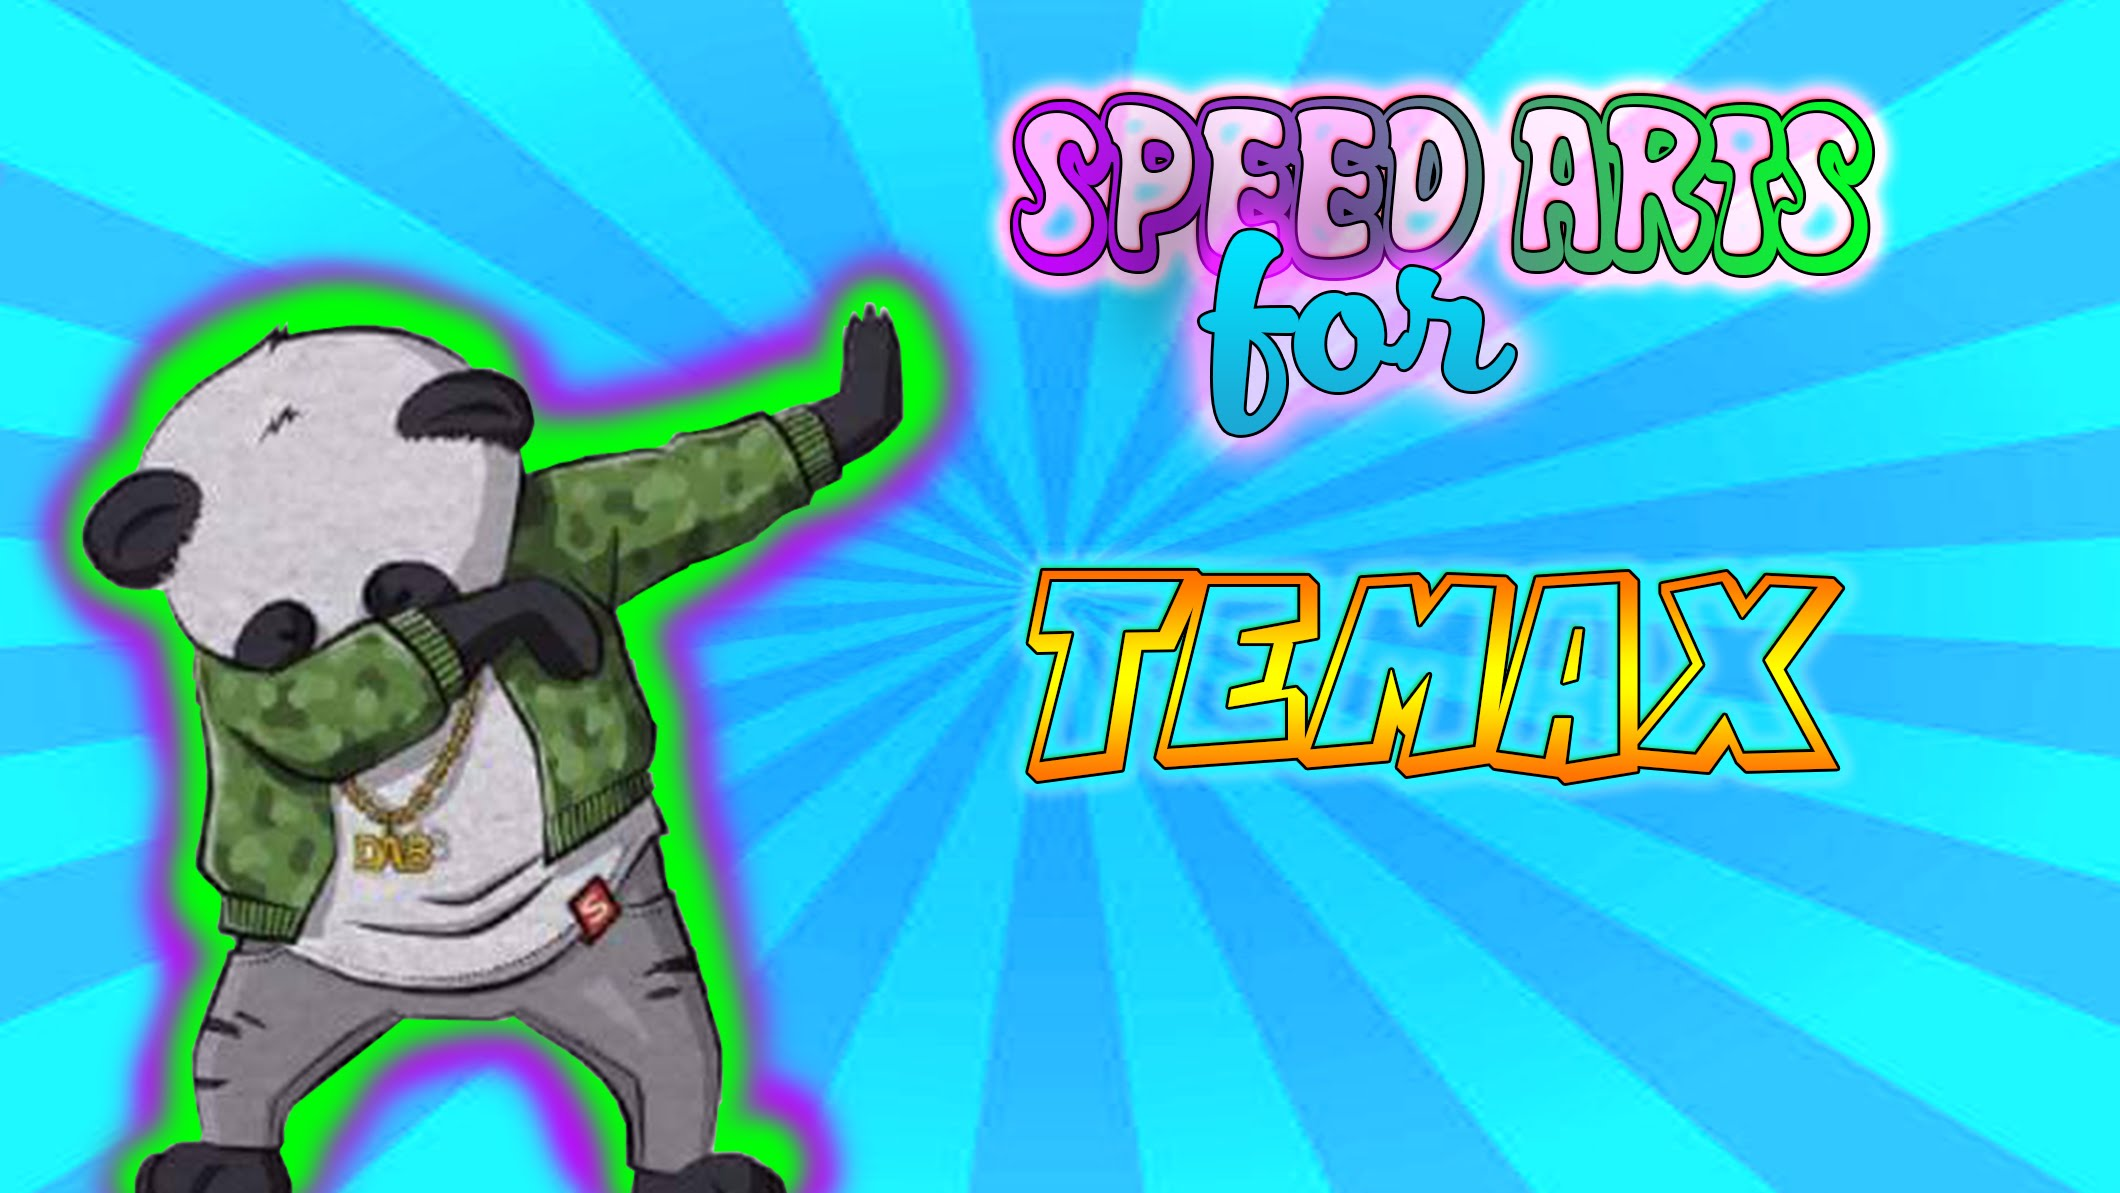 SPEED ARTS FOR TEMAX GAMING.